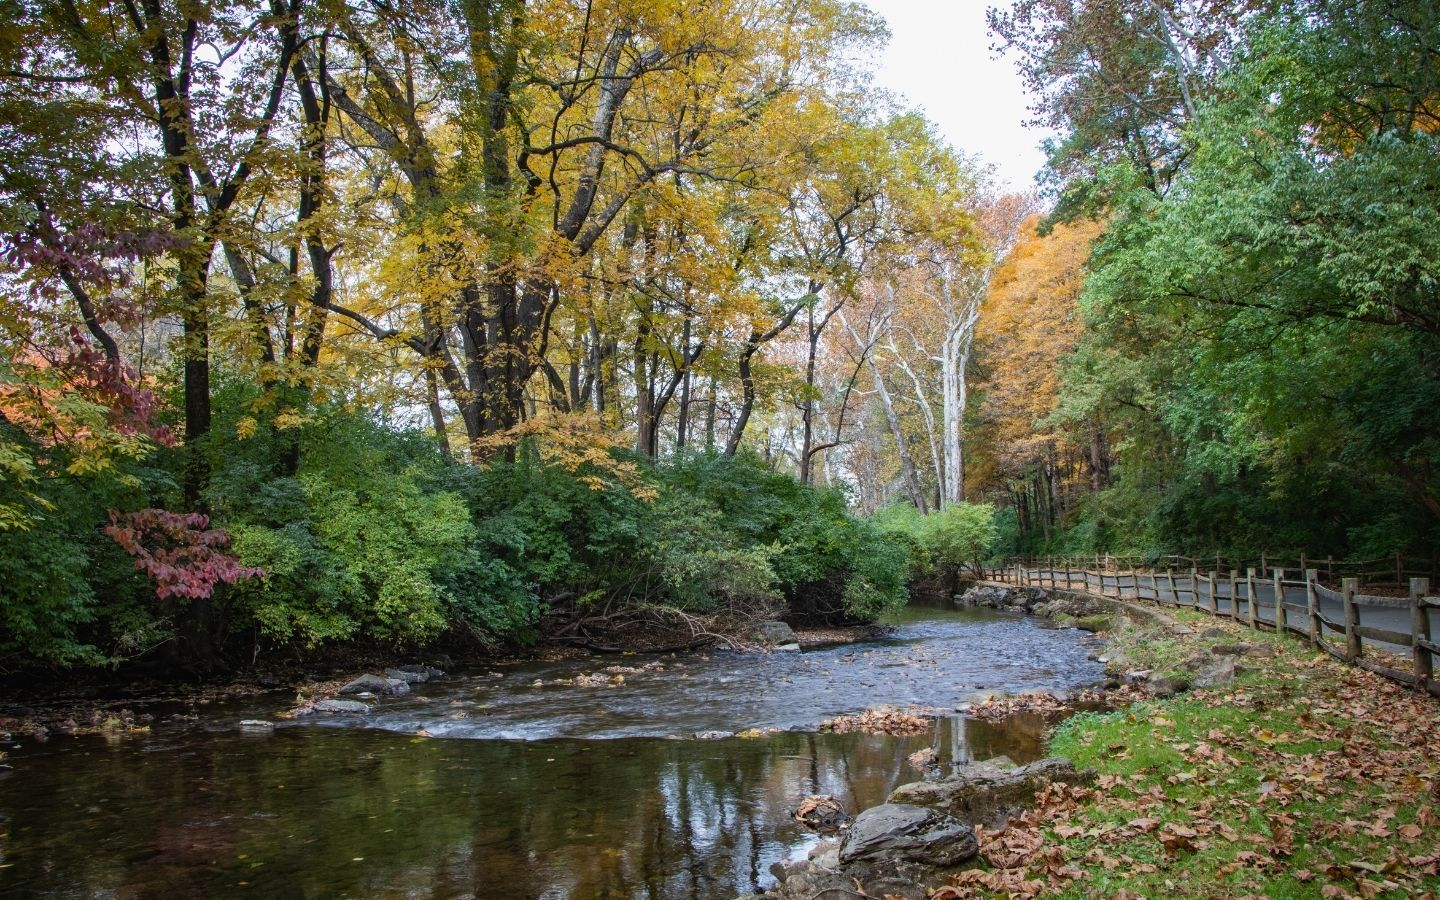 Pennsylvania park with creek and waterfall surrounding by trees in autumn hues